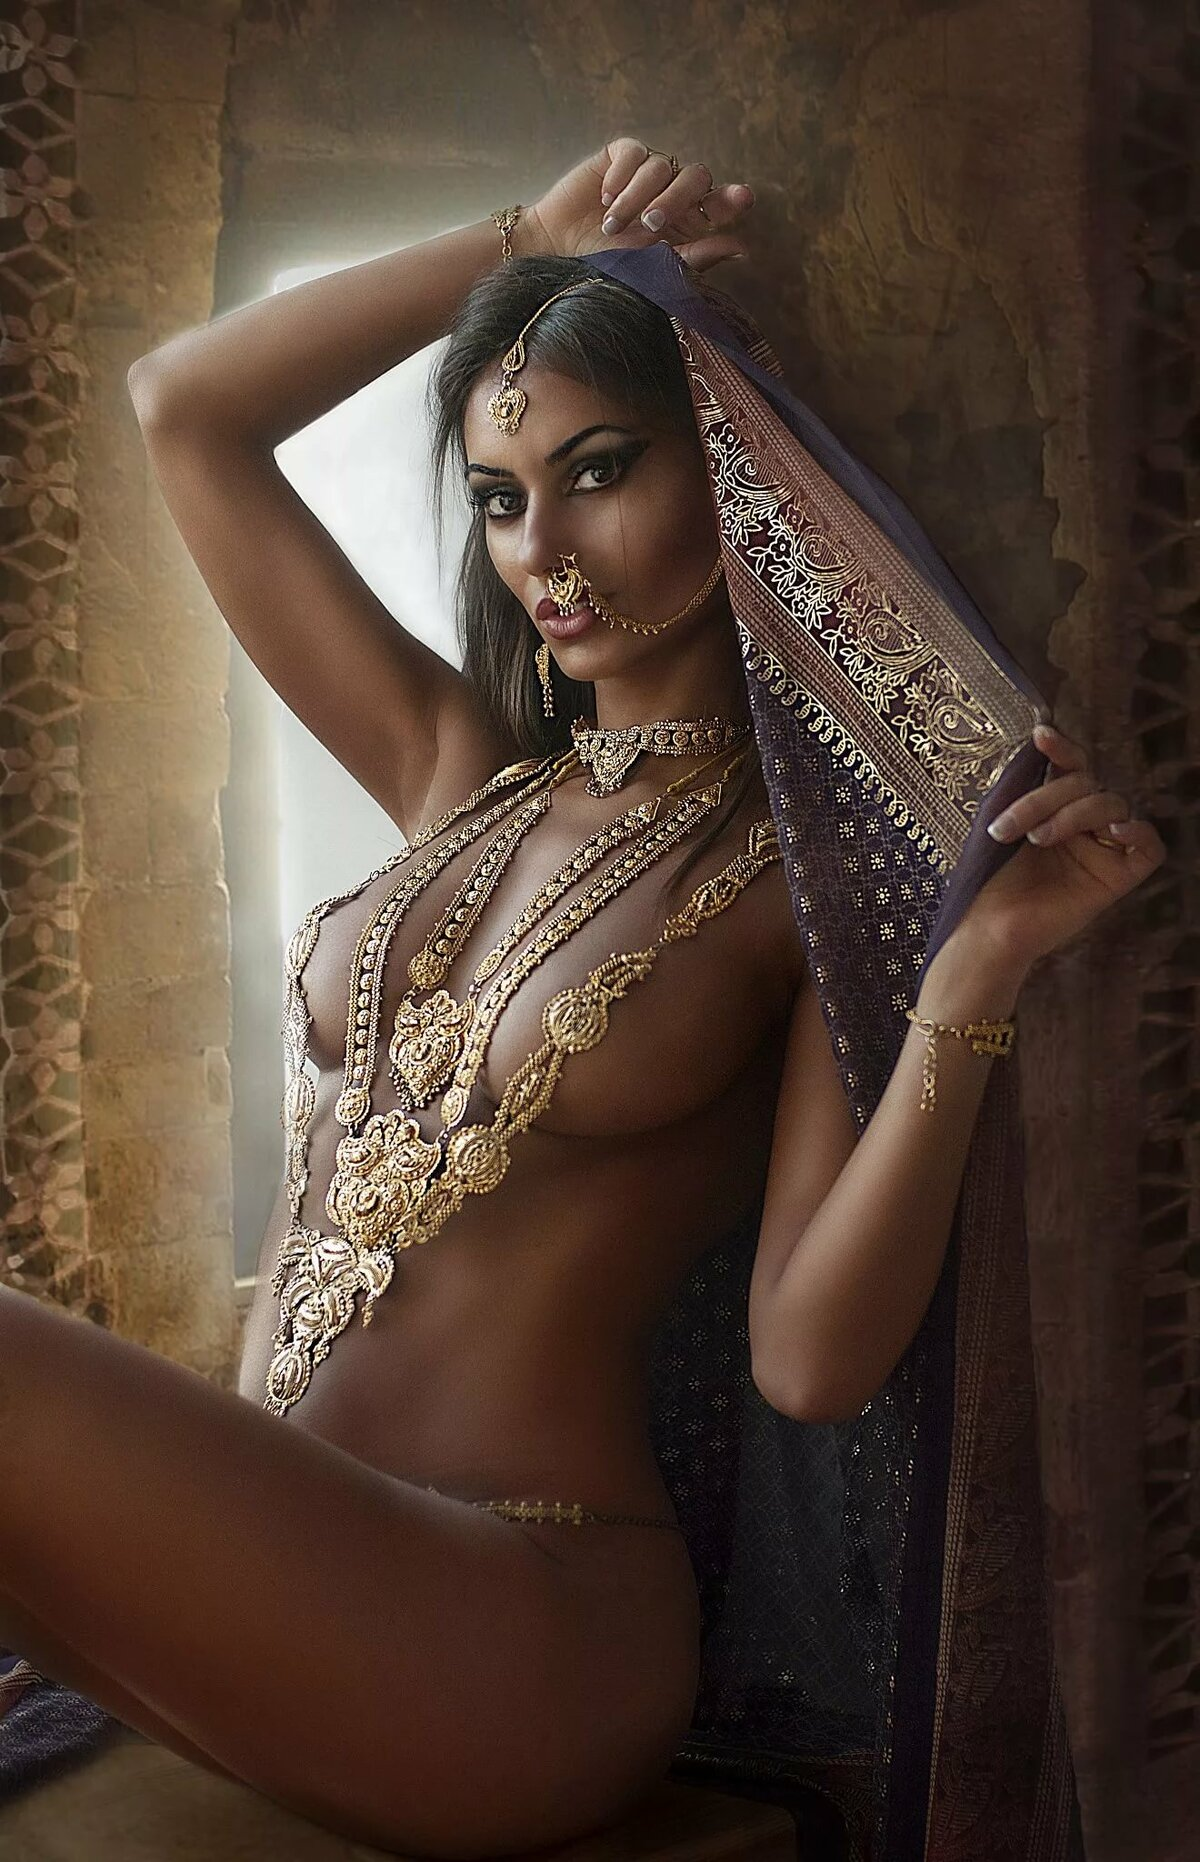 Indian sexy nude photos #1